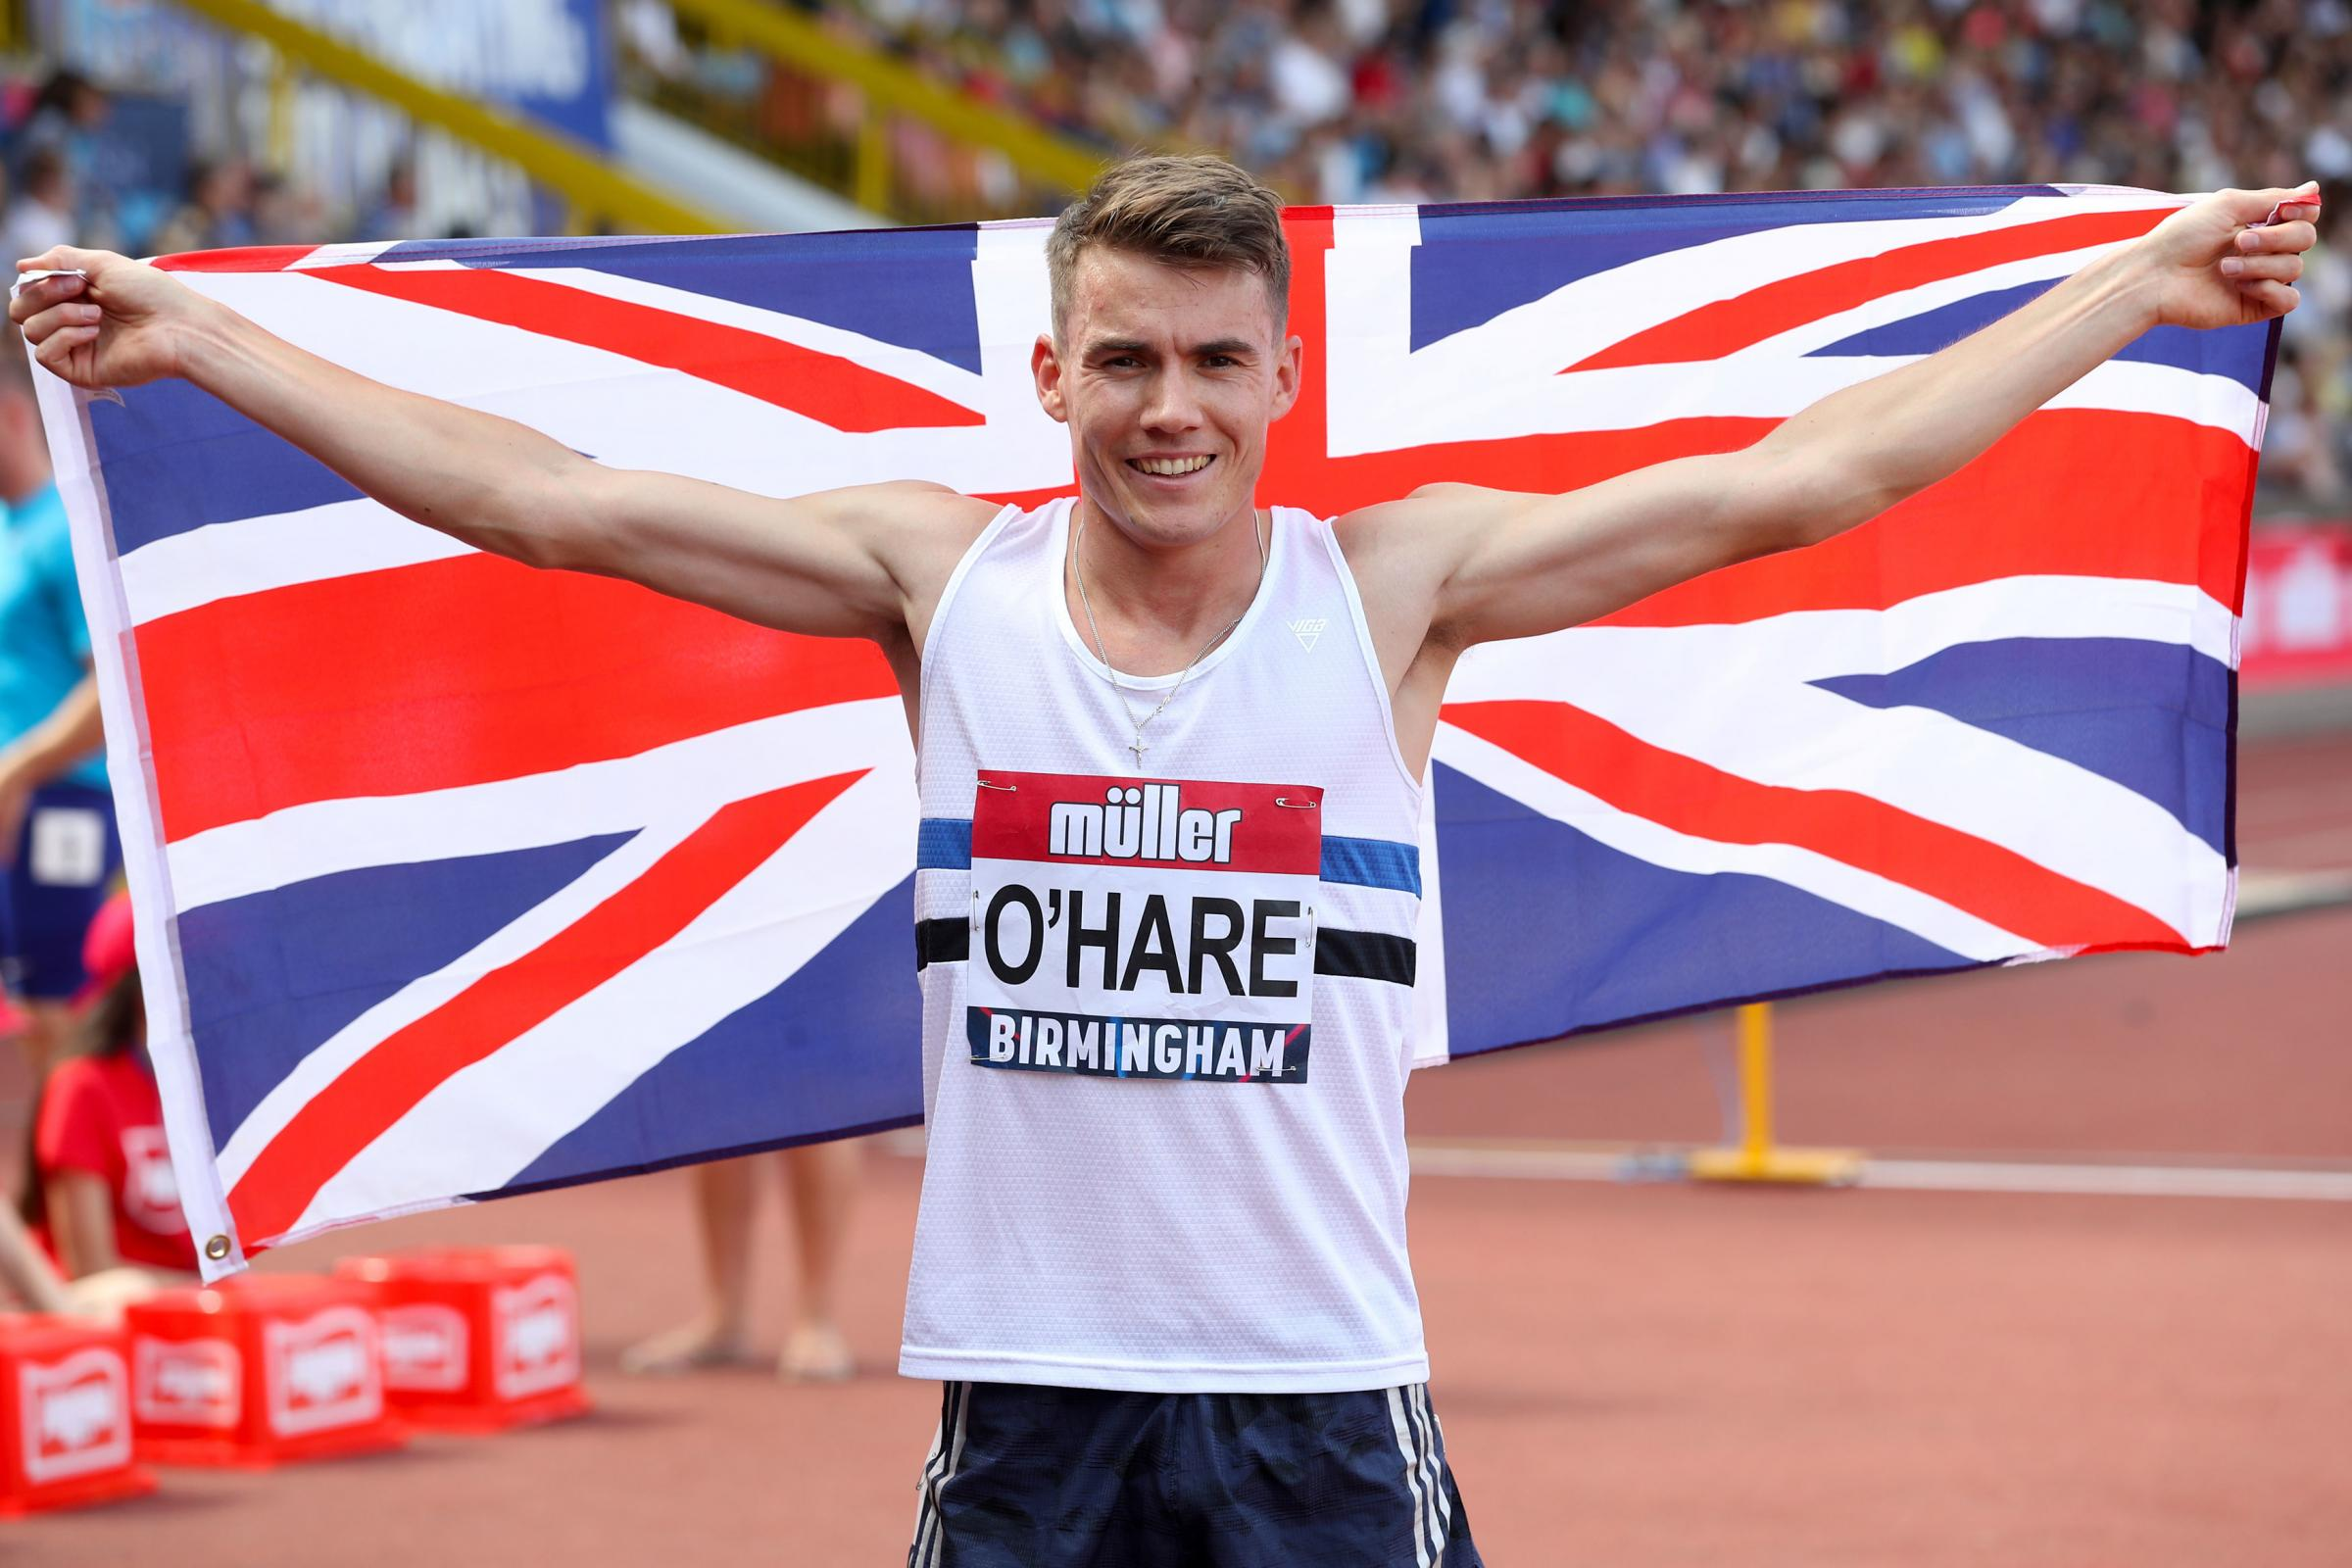 Chris O'Hare celebrates winning the Men's 1500 metres final during the Muller British Athletics Championships at Alexander Stadium, Birmingham. Photo: Martin Rickett/PA Wire.